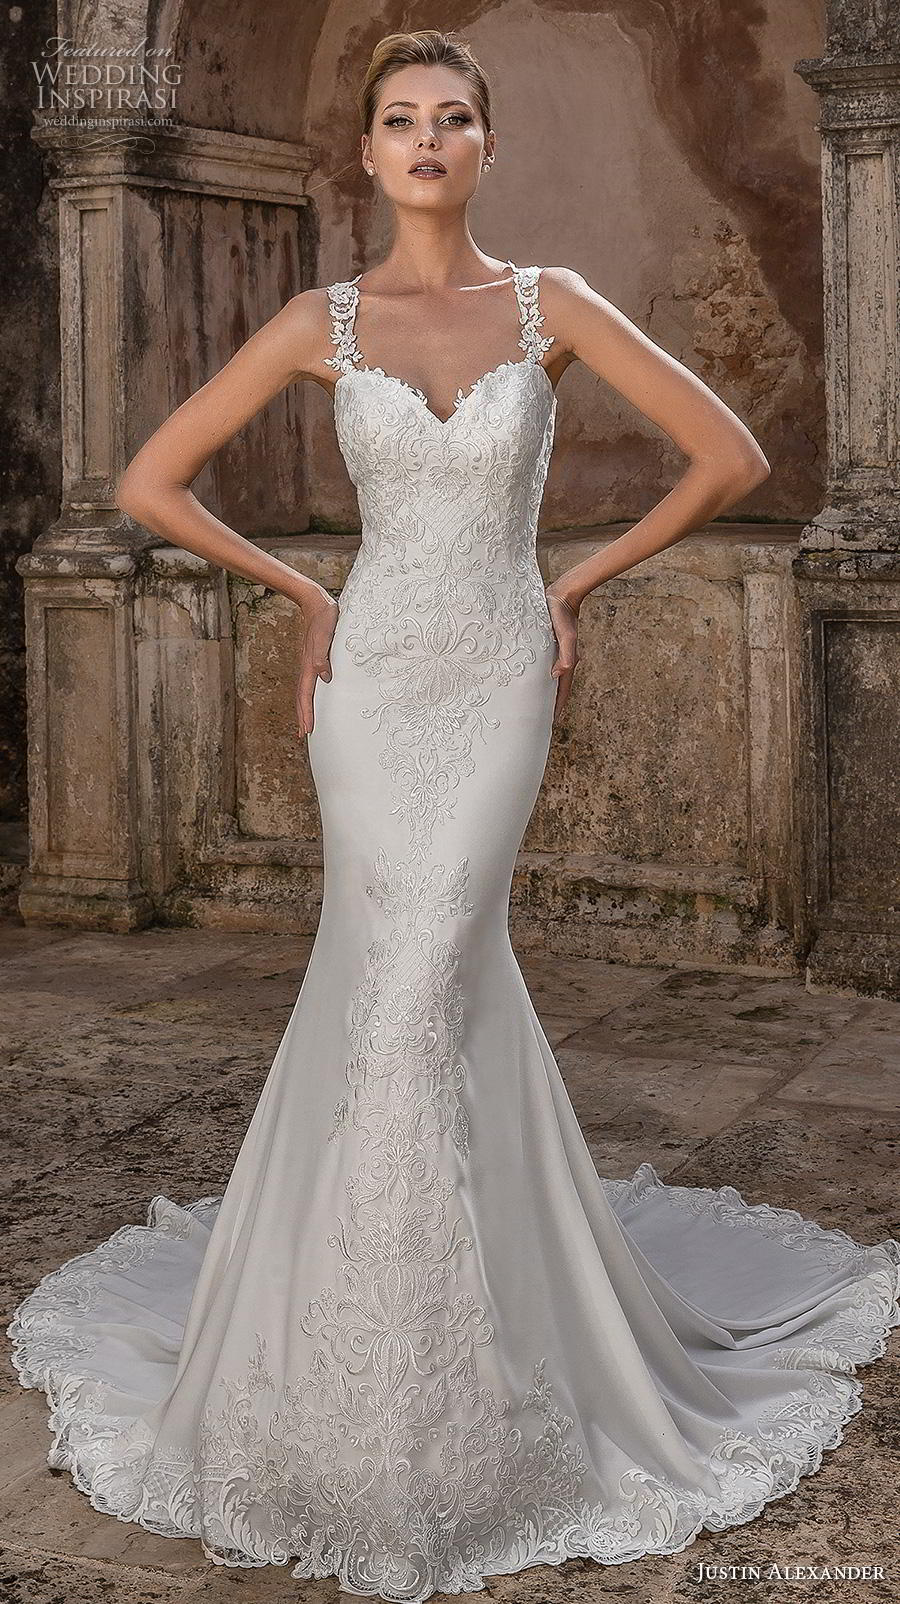 justin alexander spring 2019 bridal sleeveless embellished strap sweetheart neckline heavily embellished bodice hem elegant fit and flare wedding dress lace button back chapel train (13) mv